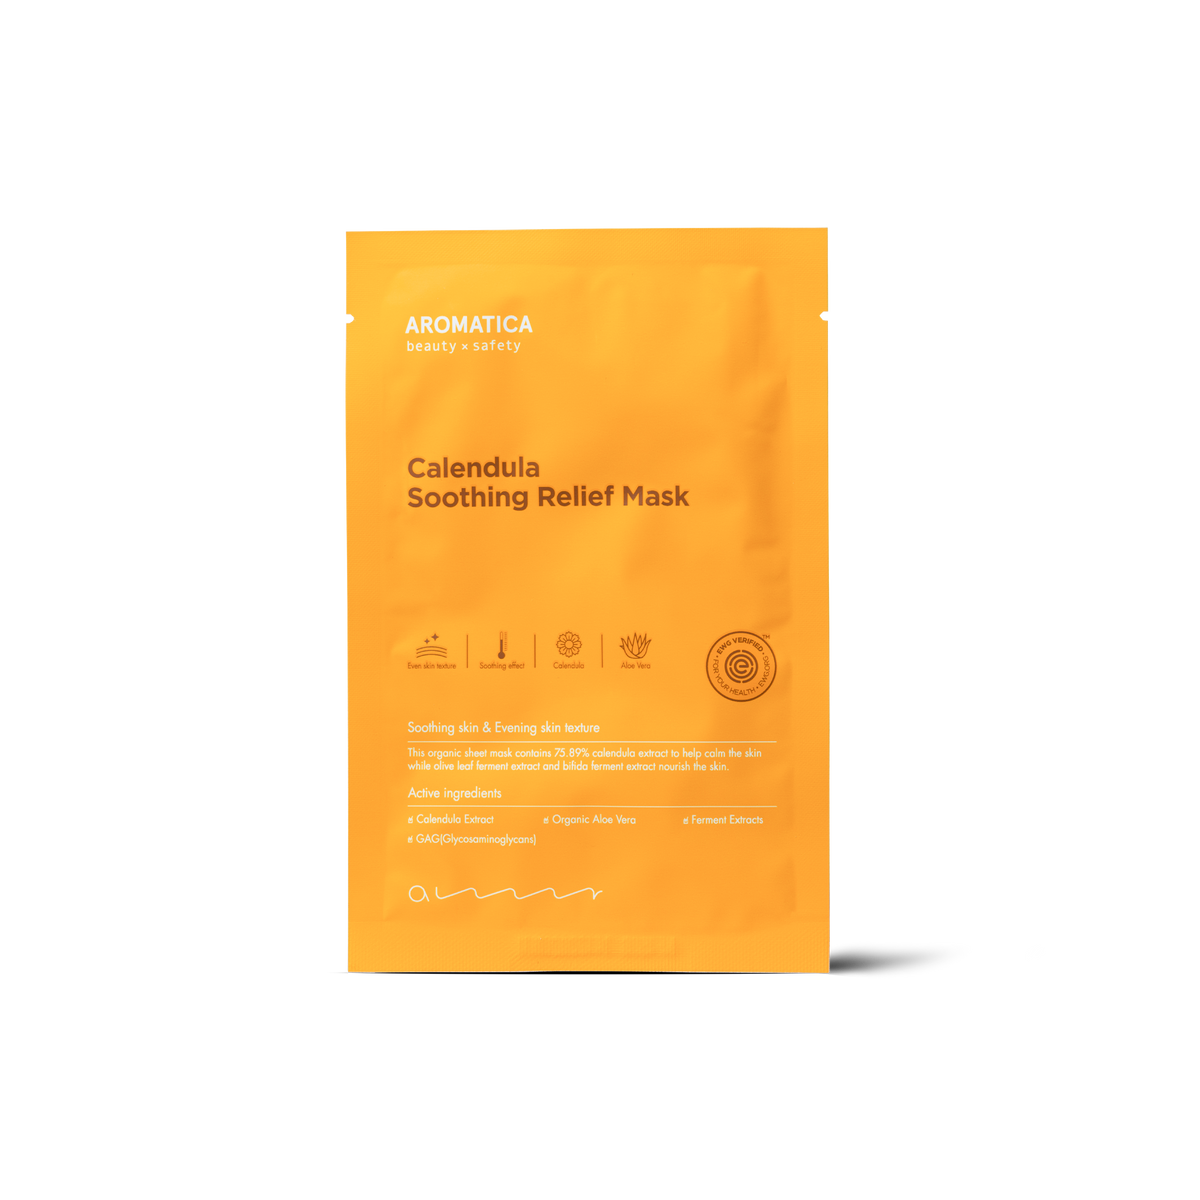 Calendula Soothing Relief Mask - 1 pc